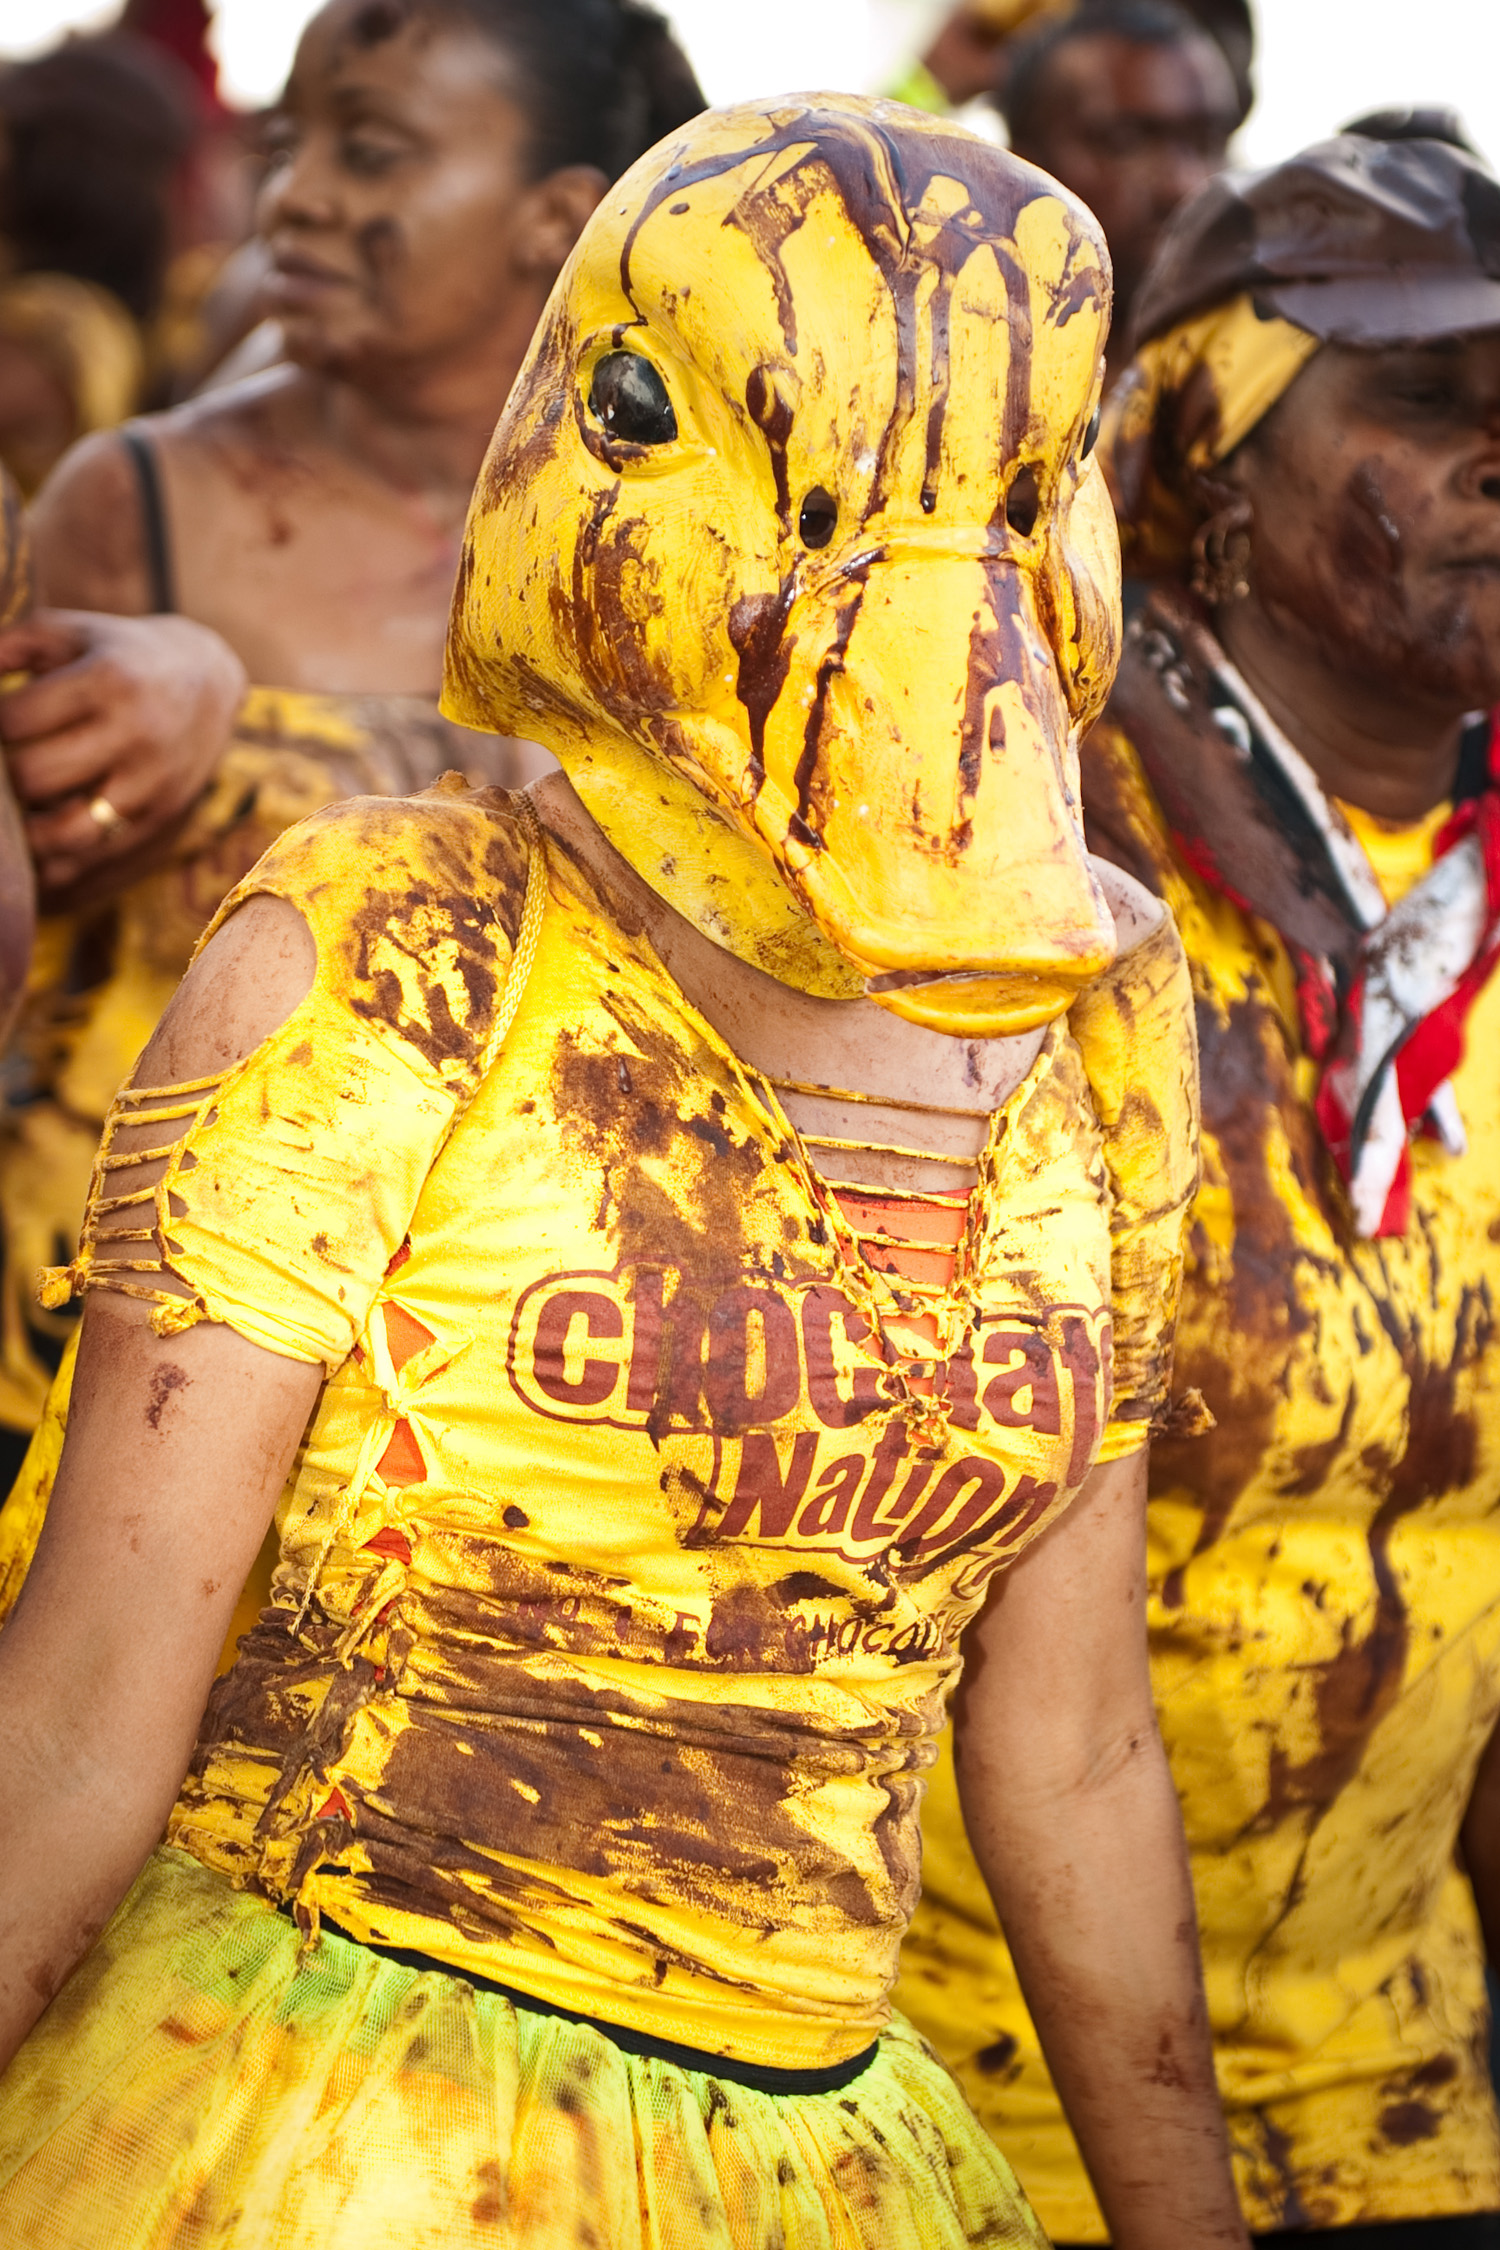 Carnival_the_chocolate_06